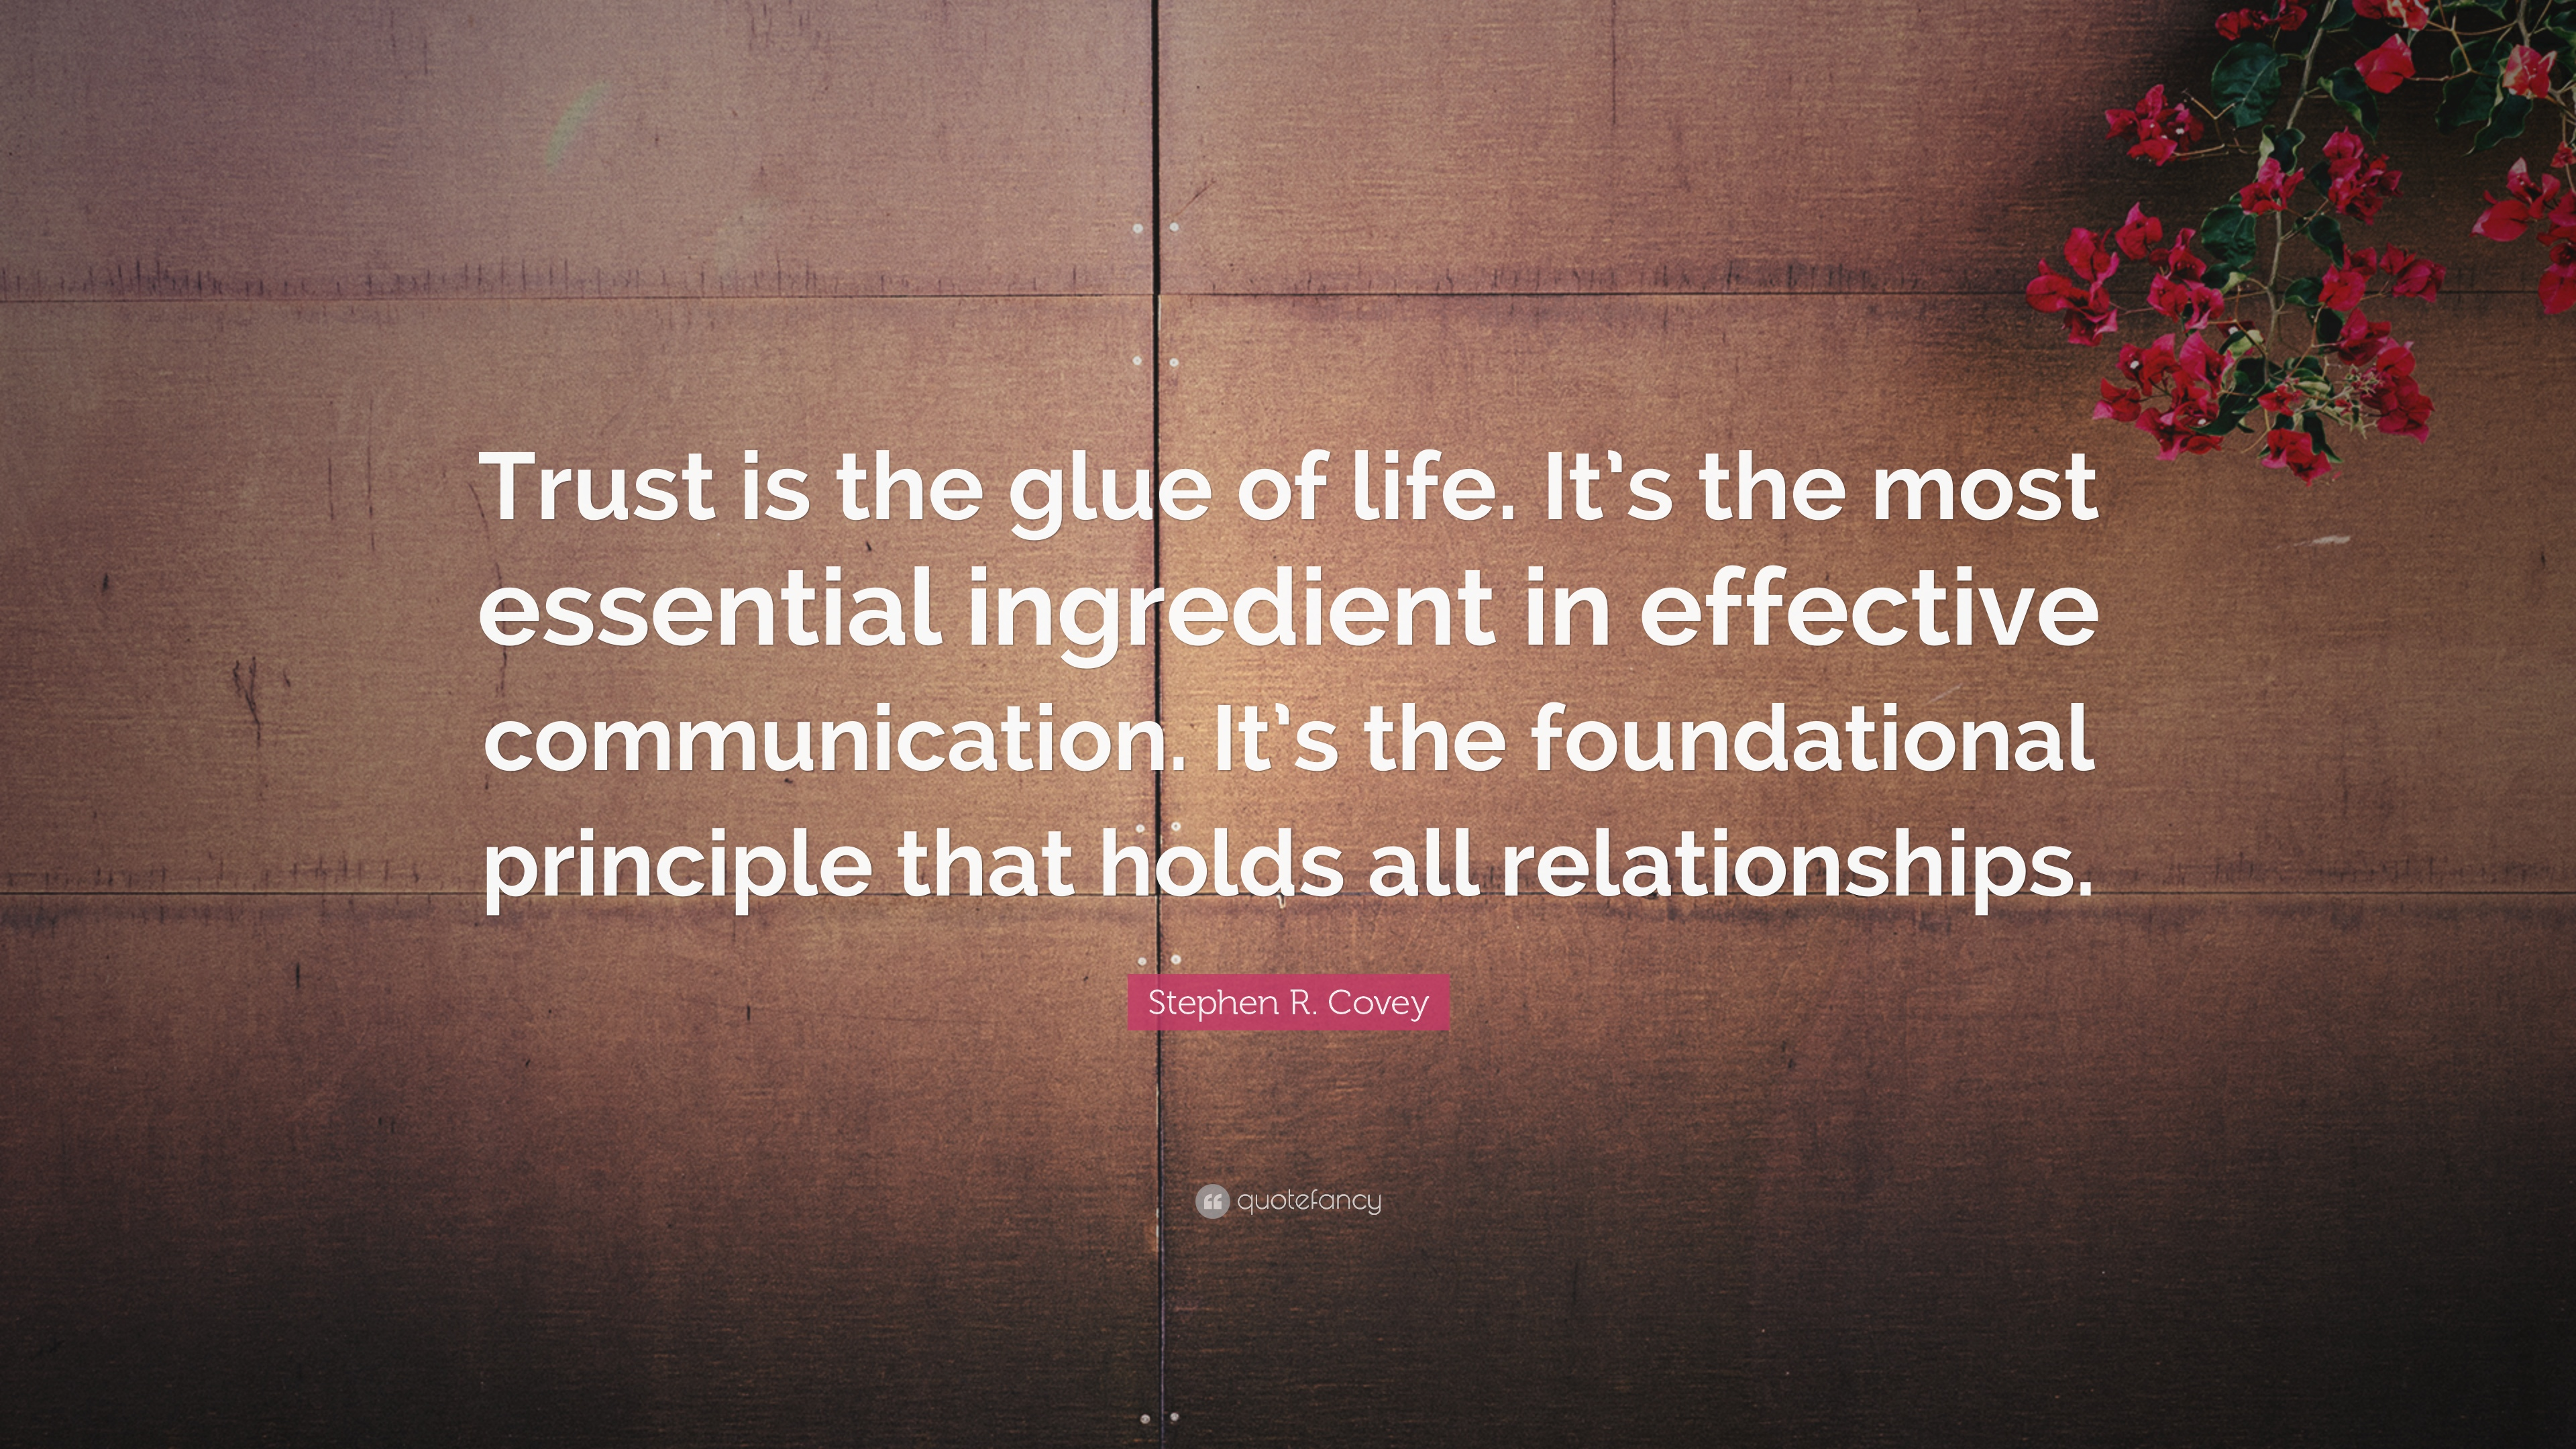 Quotes About Trust And Love In Relationships Quotes About Trust 44 Wallpapers  Quotefancy